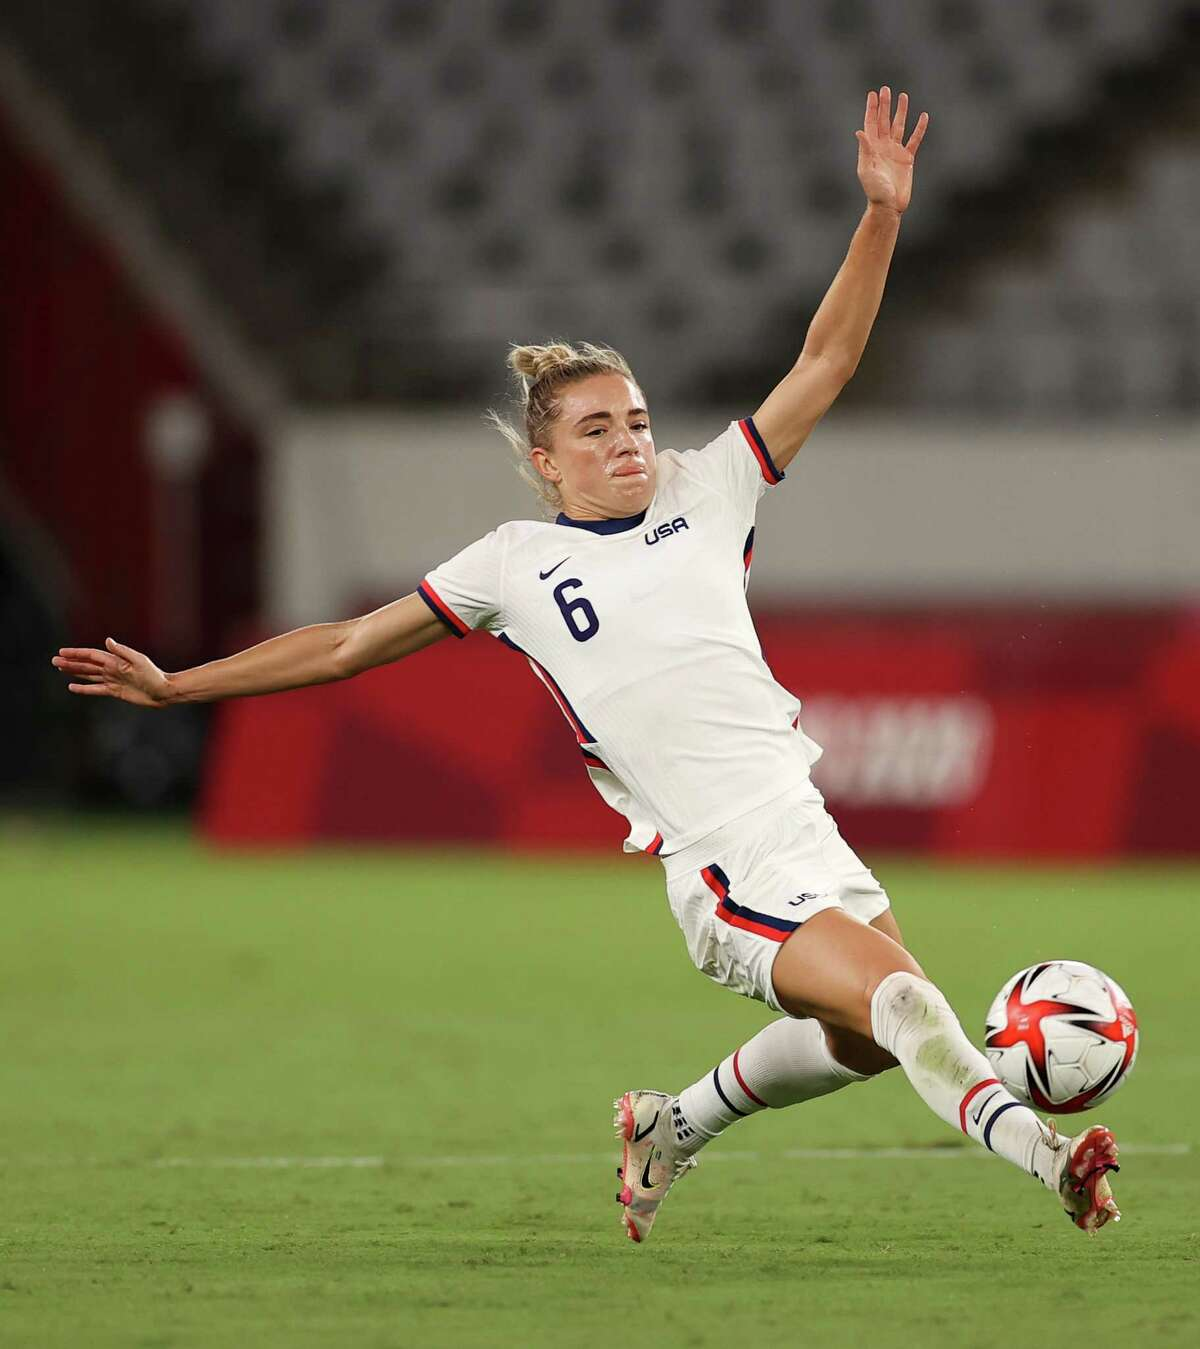 CHOFU, JAPAN - JULY 21: Kristie Mewis #6 of Team United States stretches for the ball during the Women's First Round Group G match between Sweden and United States during the Tokyo 2020 Olympic Games at Tokyo Stadium on July 21, 2021 in Chofu, Tokyo, Japan.